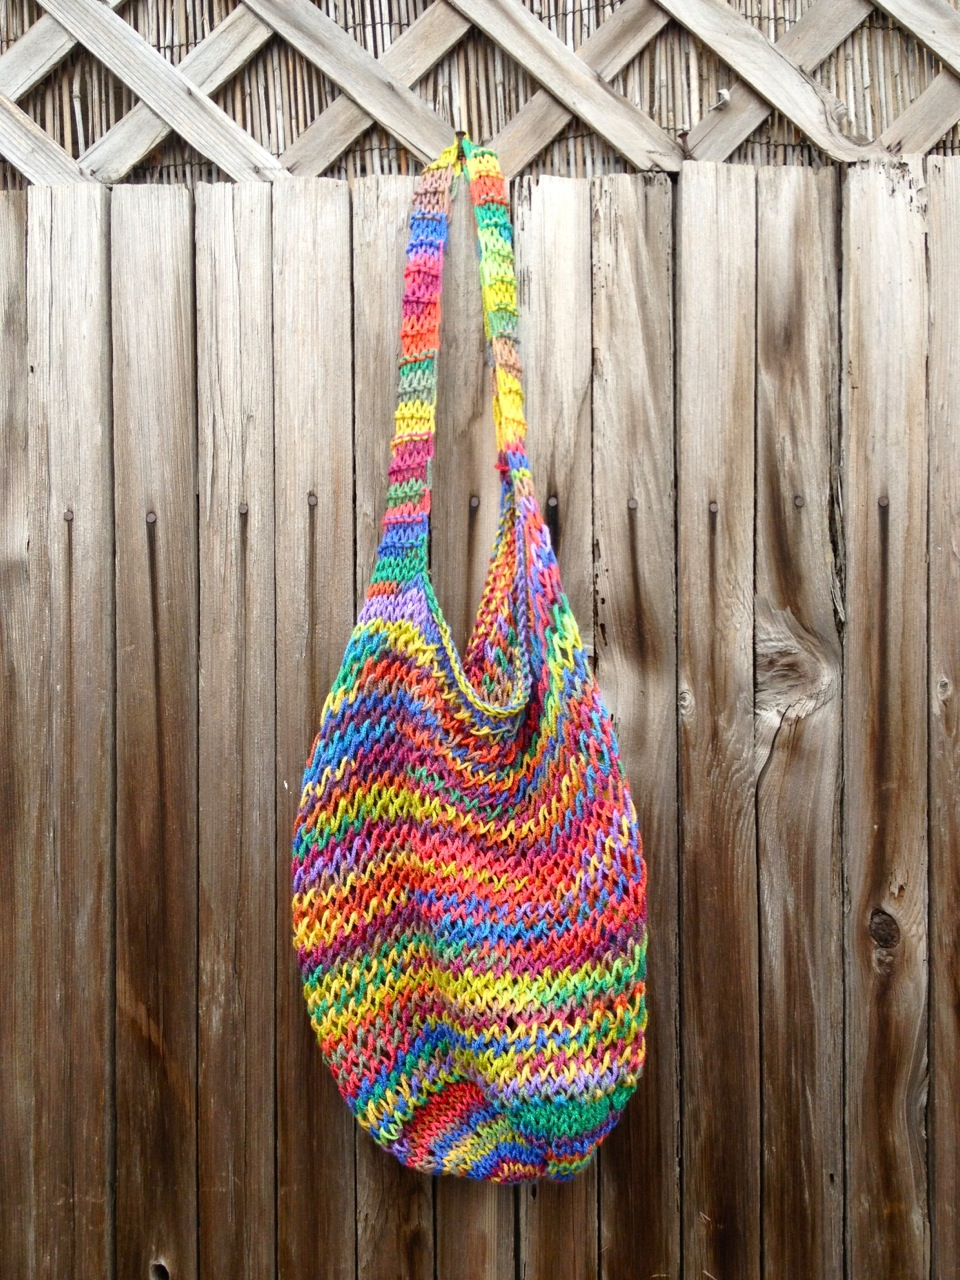 KNIT RAINBOW BAG | made by Julianne